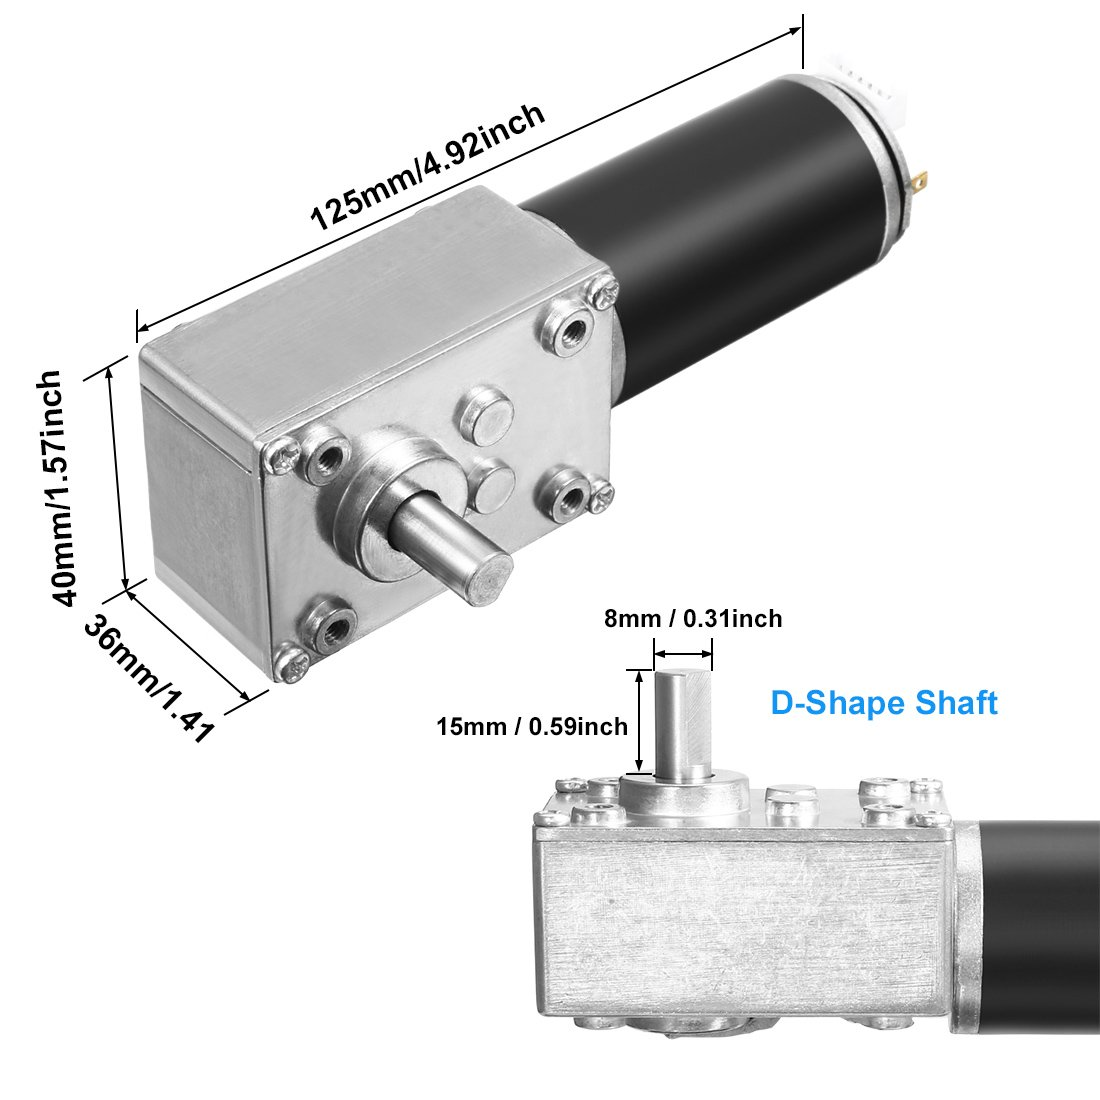 sourcingmap DC 12V 111RPM 4Kg.cm Self-Locking Worm Gear Motor With Encoder And Cable High Torque Speed Reduction Motor